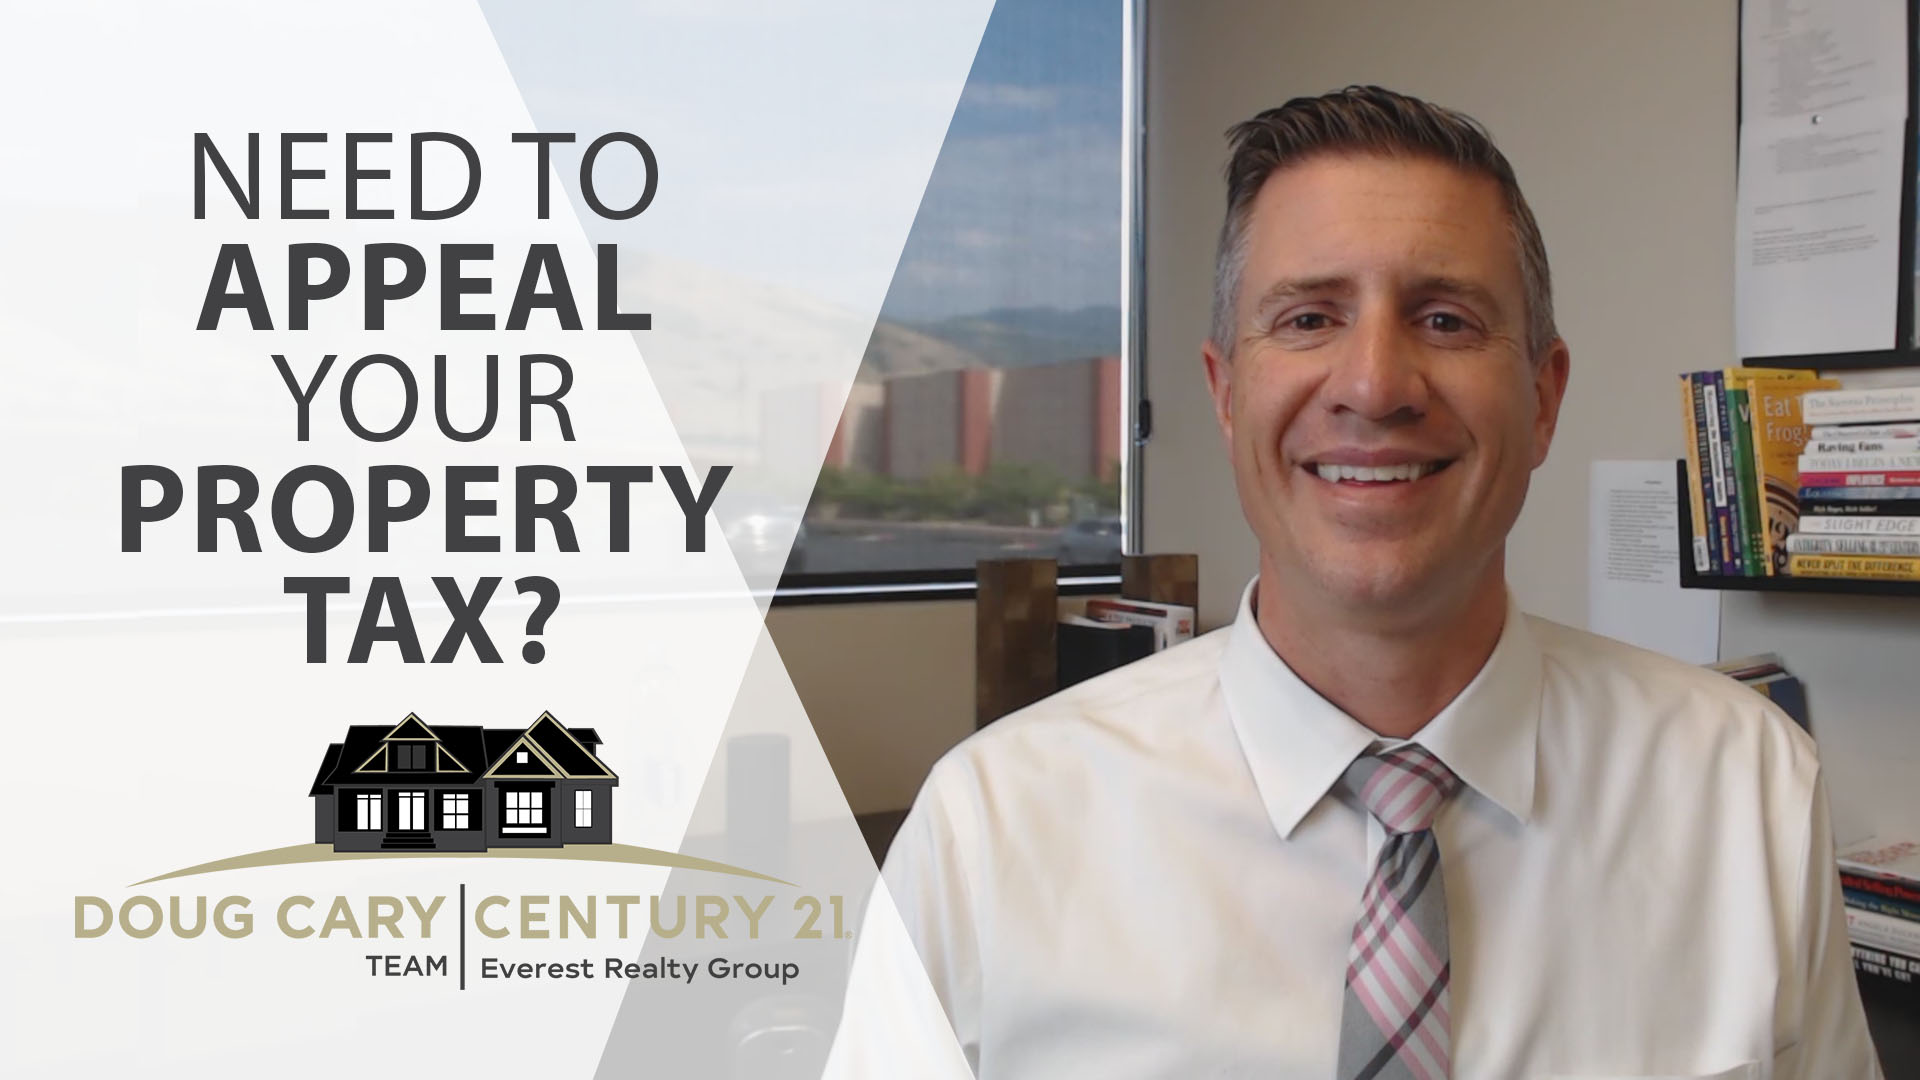 Don't Miss the Deadline to Appeal Your Property Tax